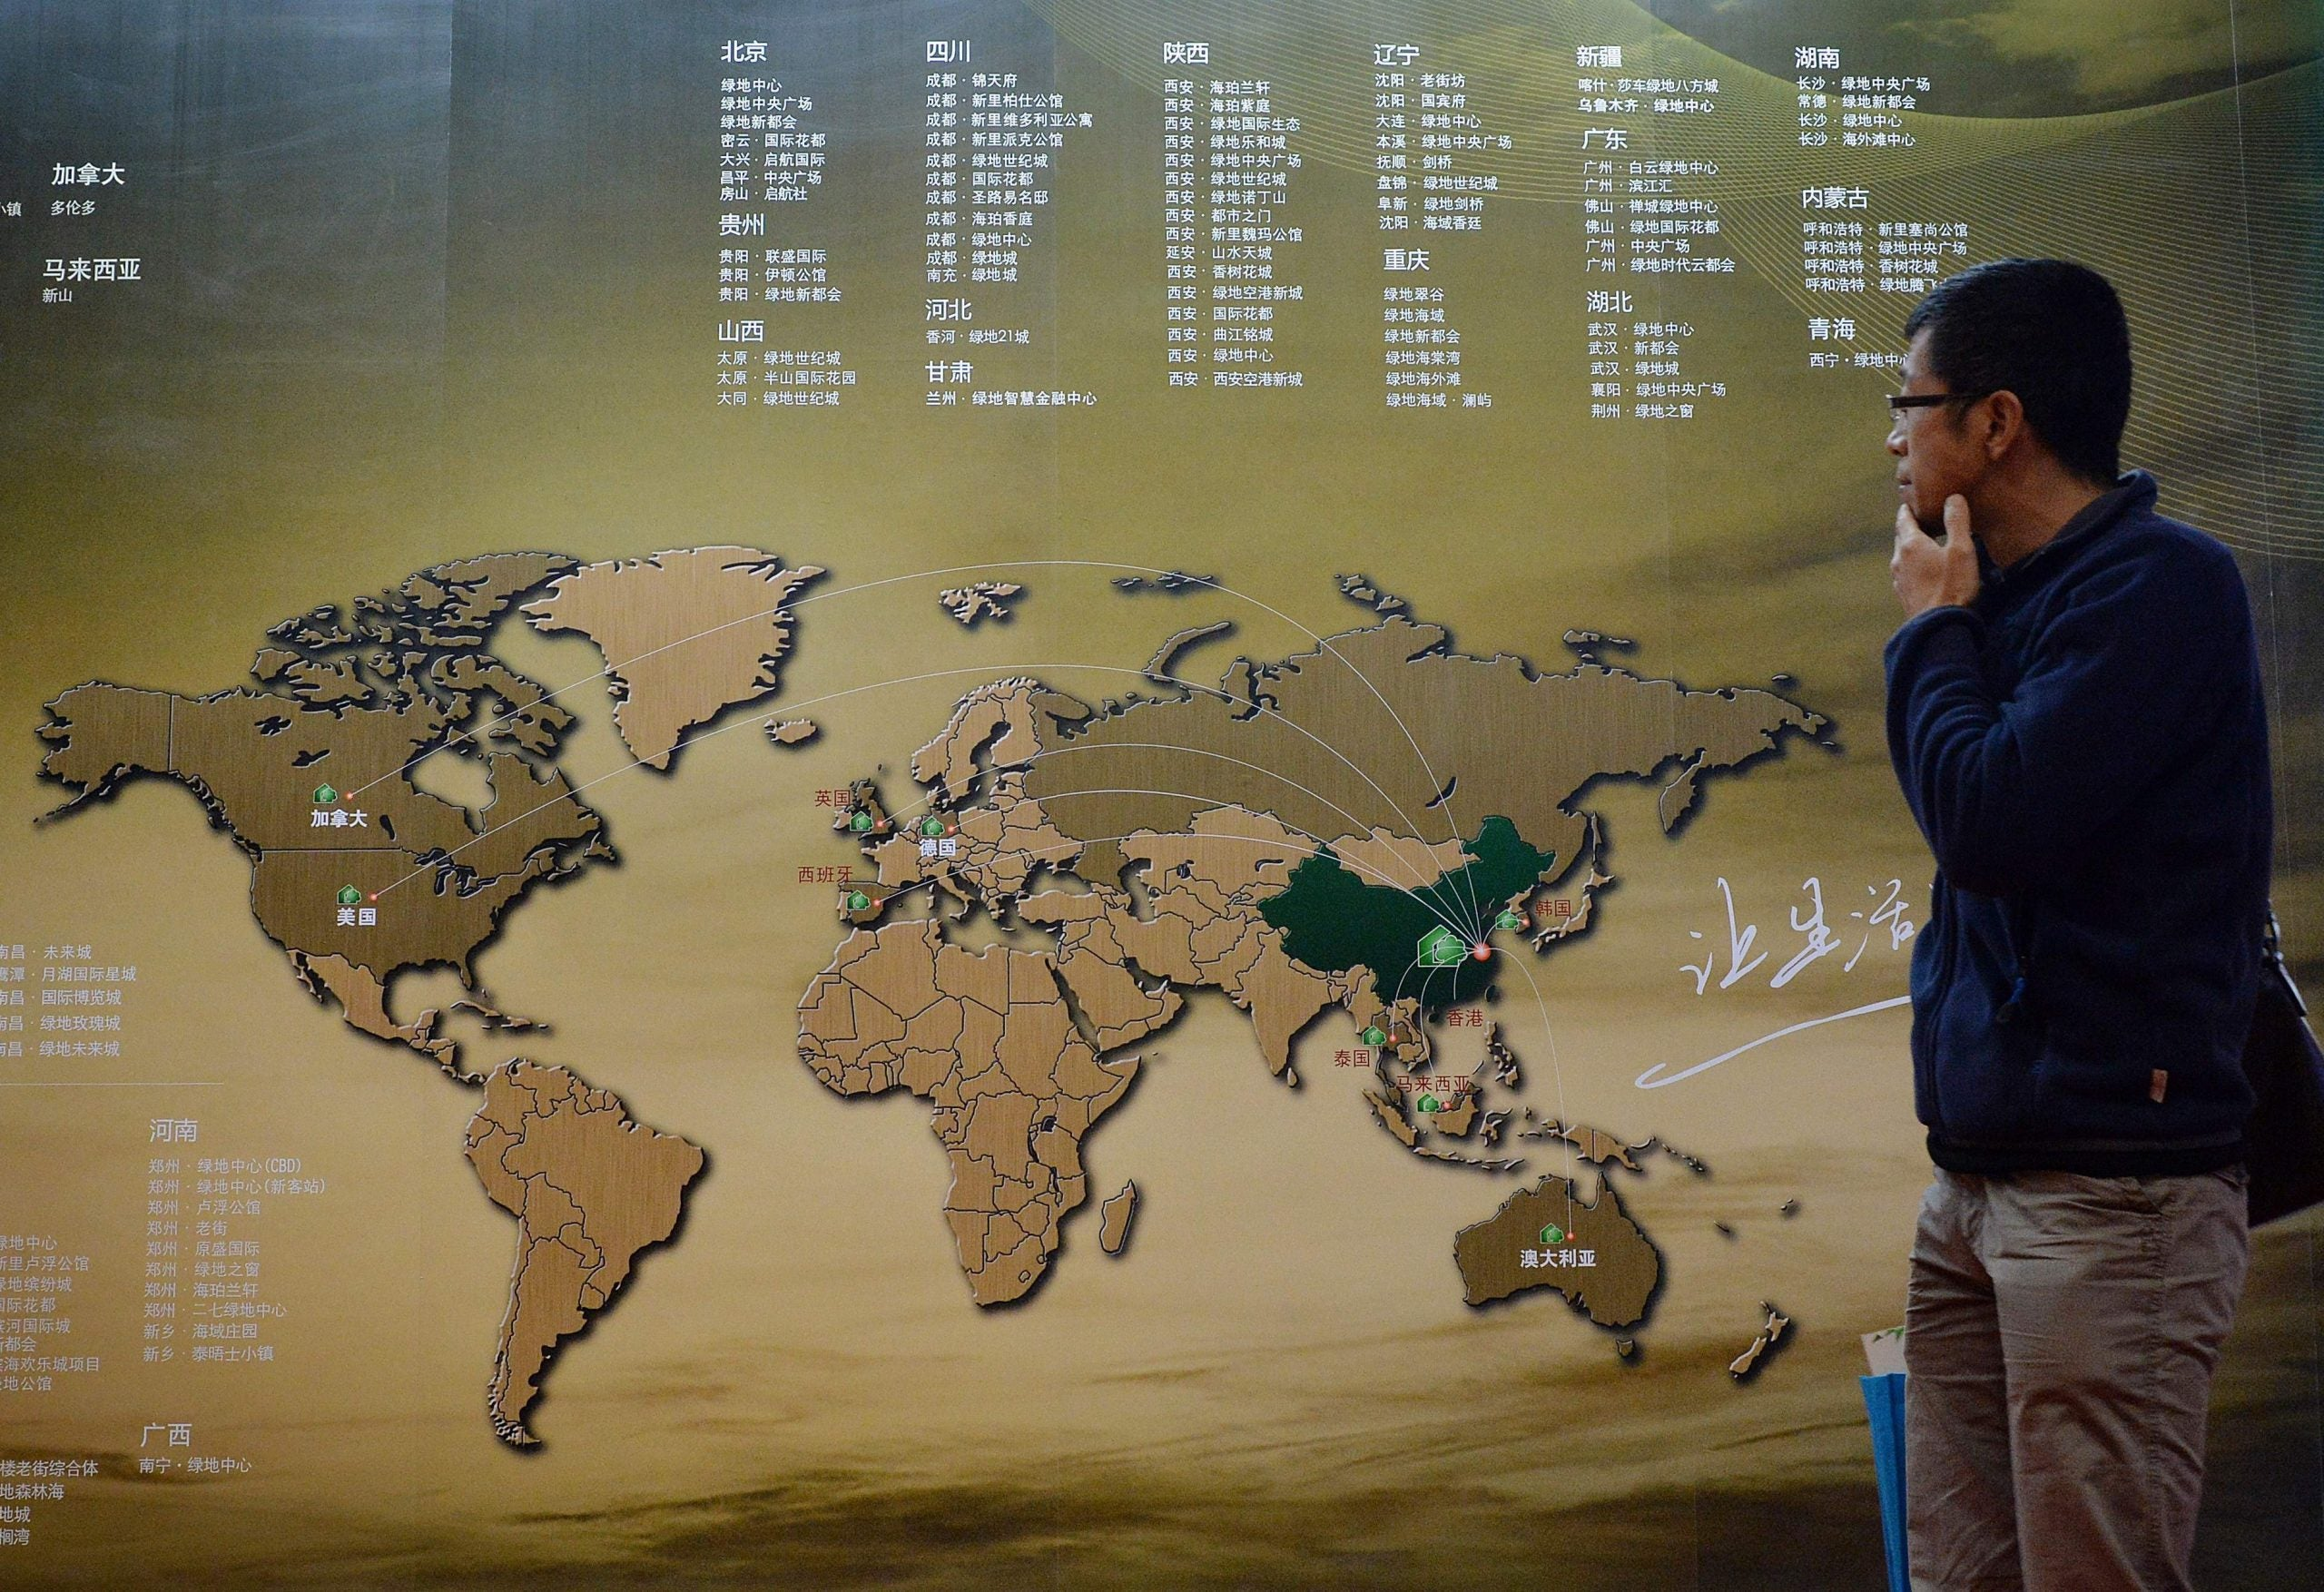 The Chinese dream drifts on undisturbed